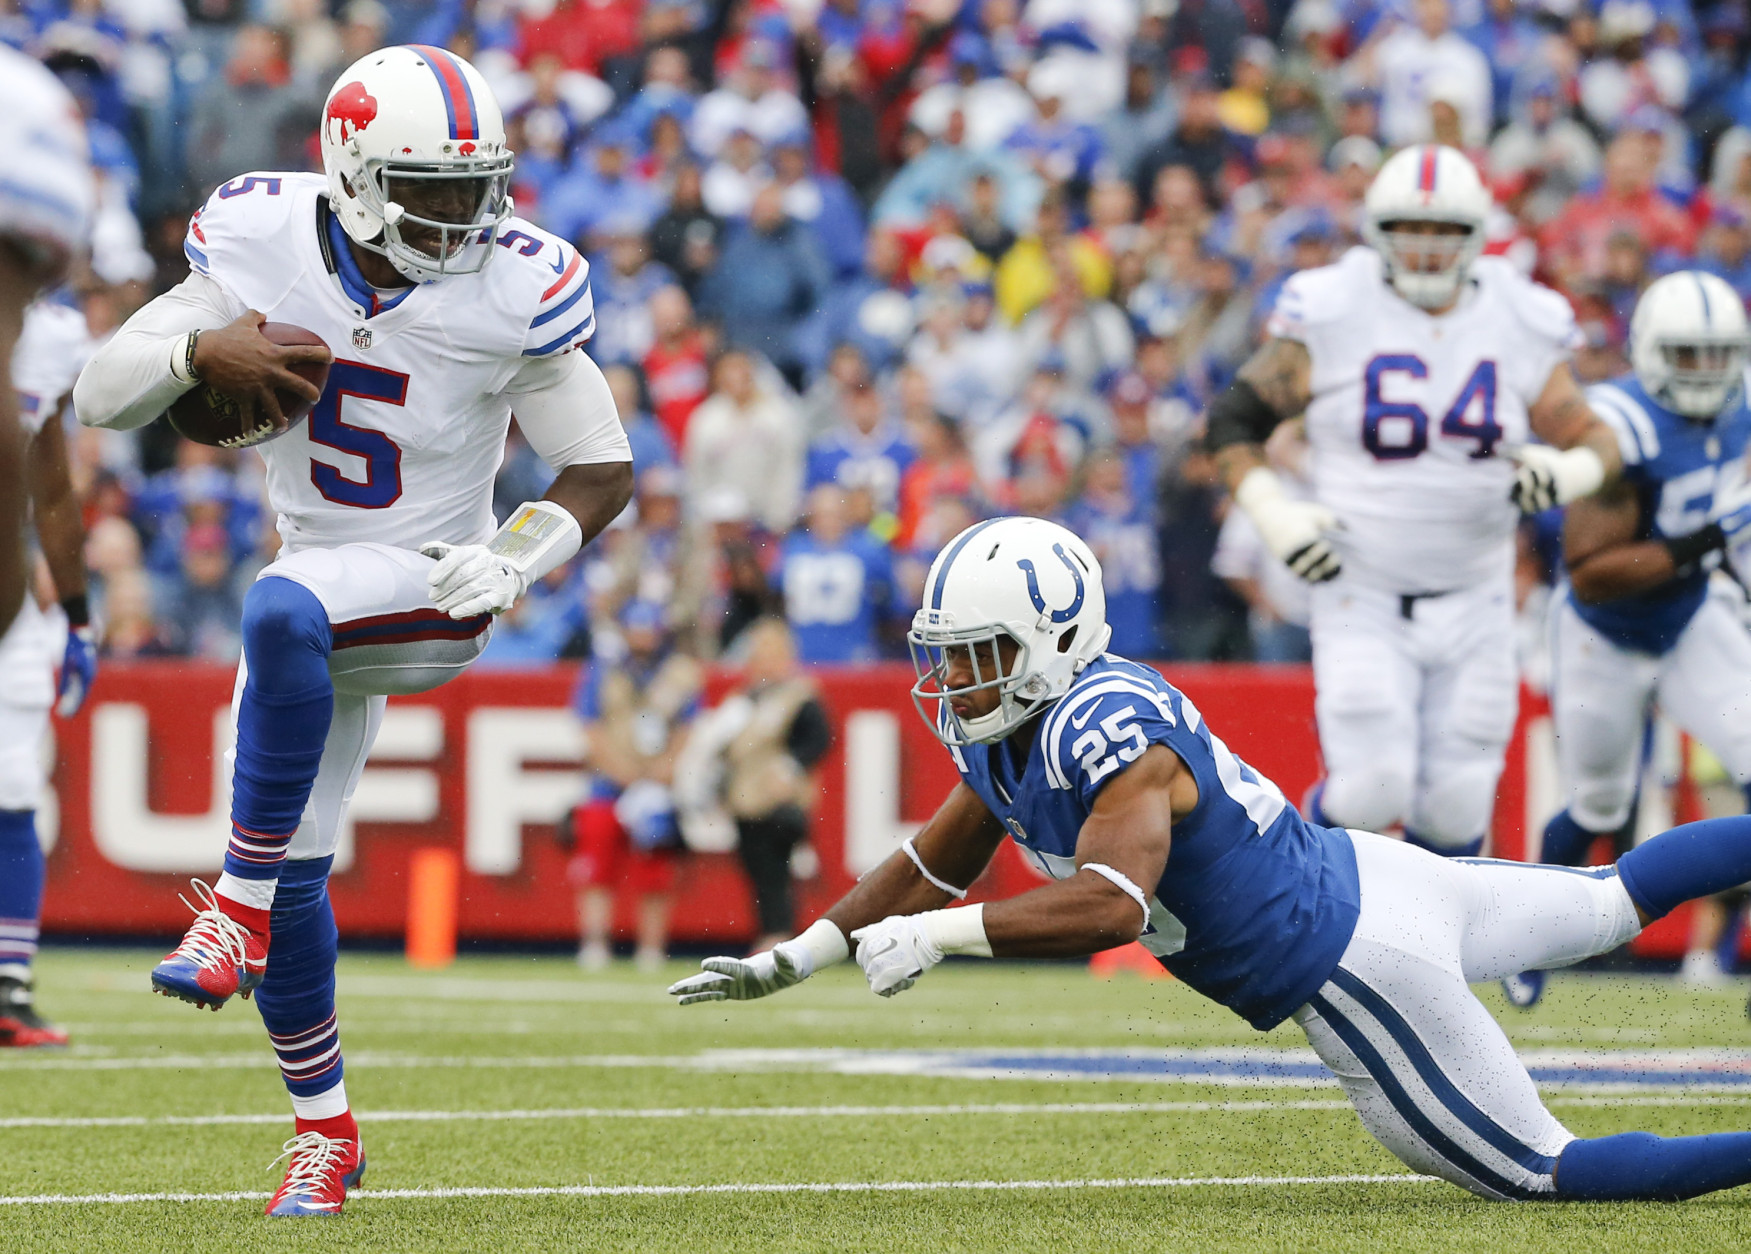 Buffalo Bills quarterback Tyrod Taylor (5) eludes Indianapolis Colts defensive back Jalil Brown (25) during the first half of an NFL football game on Sunday, Sept. 13, 2015, in Orchard Park, N.Y. (AP Photo/Bill Wippert)